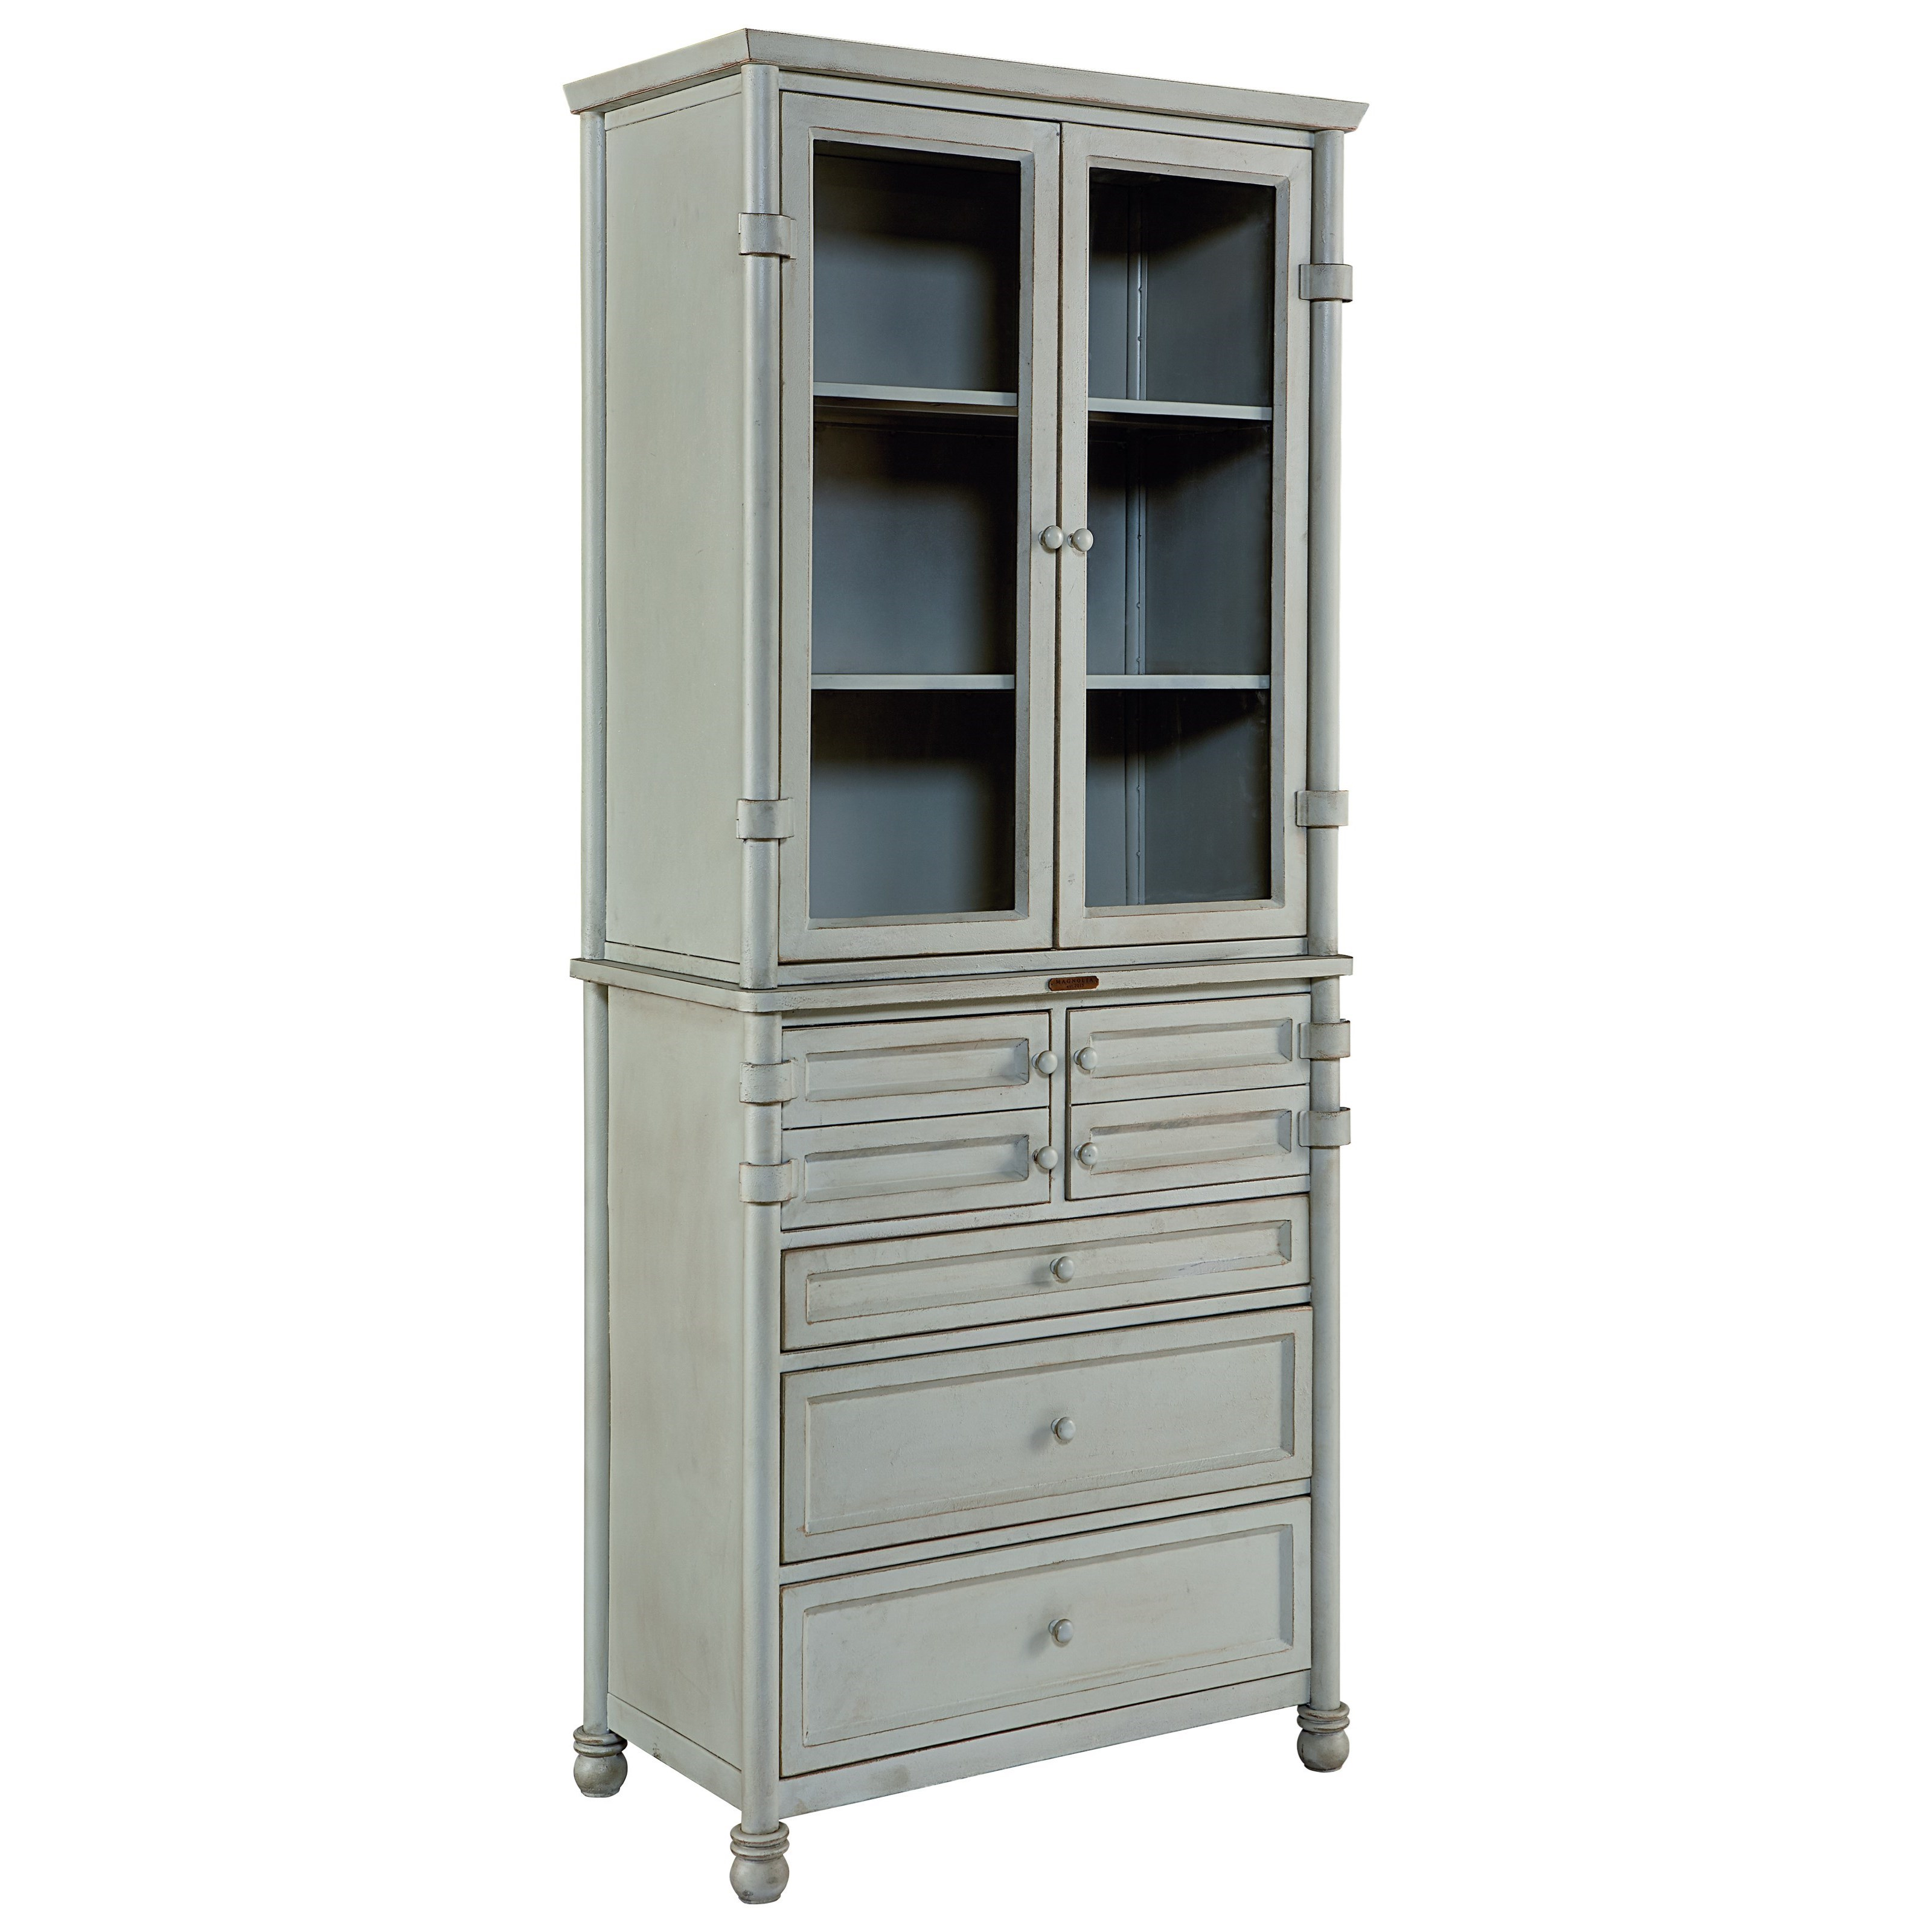 Magnolia Home by Joanna Gaines Industrial Metal Dispensary Cabinet - Item Number: 1010732GG+1010733GG